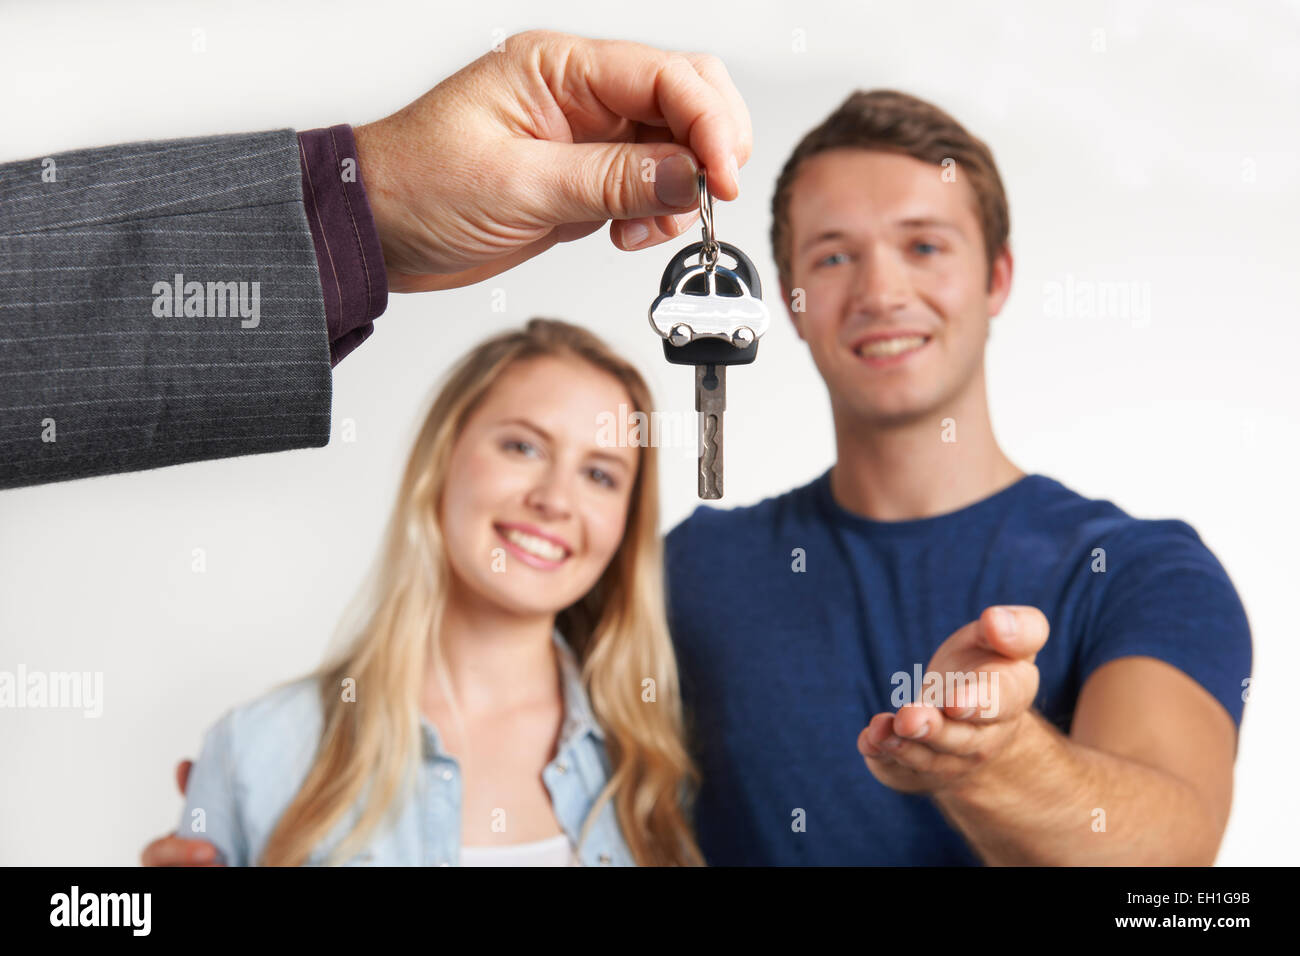 Dealer Handing Over Keys For New Car To Young Couple - Stock Image